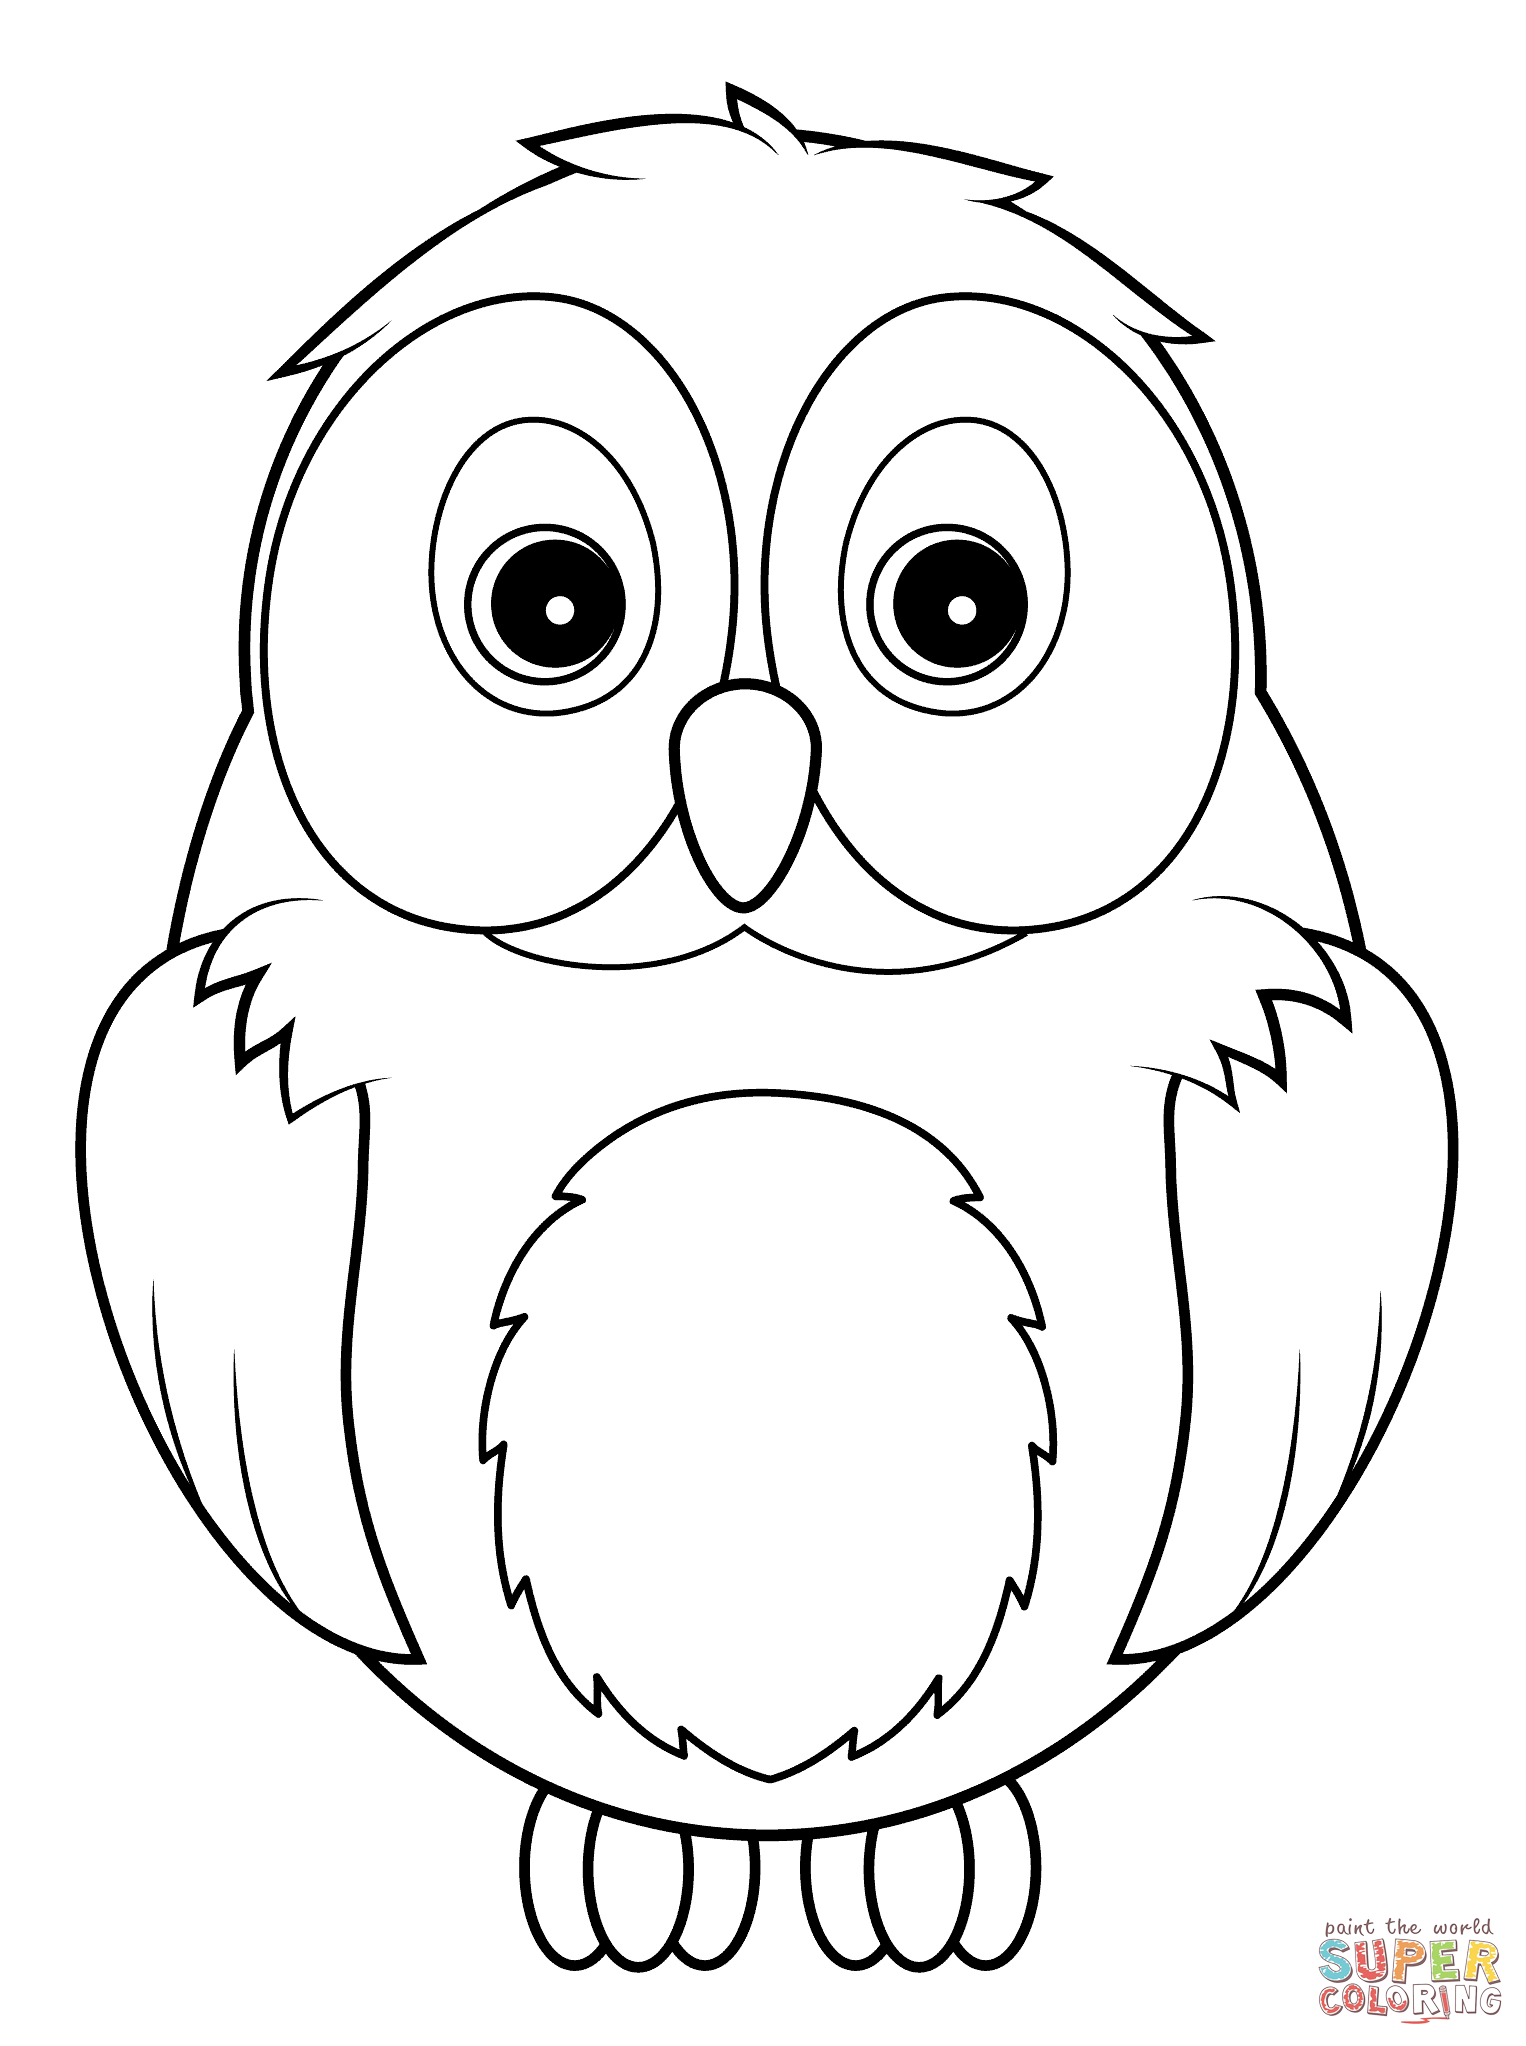 Cute coloring pages of owls